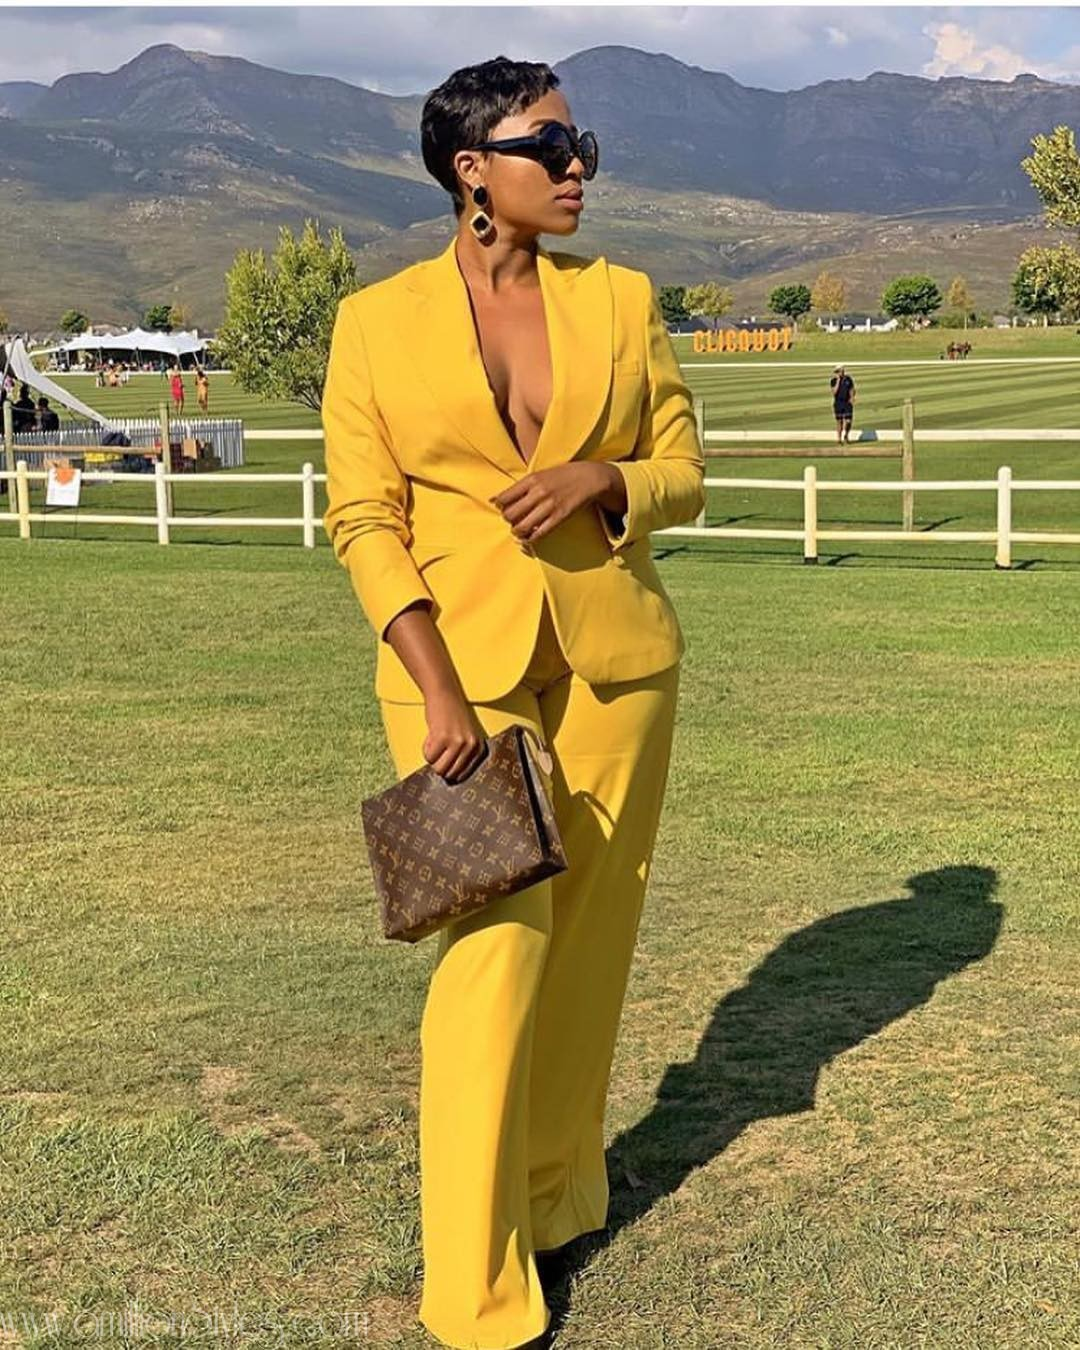 Fashionable Suits Worn By Women At The 2019 Veuve Clicquot Masters Polo